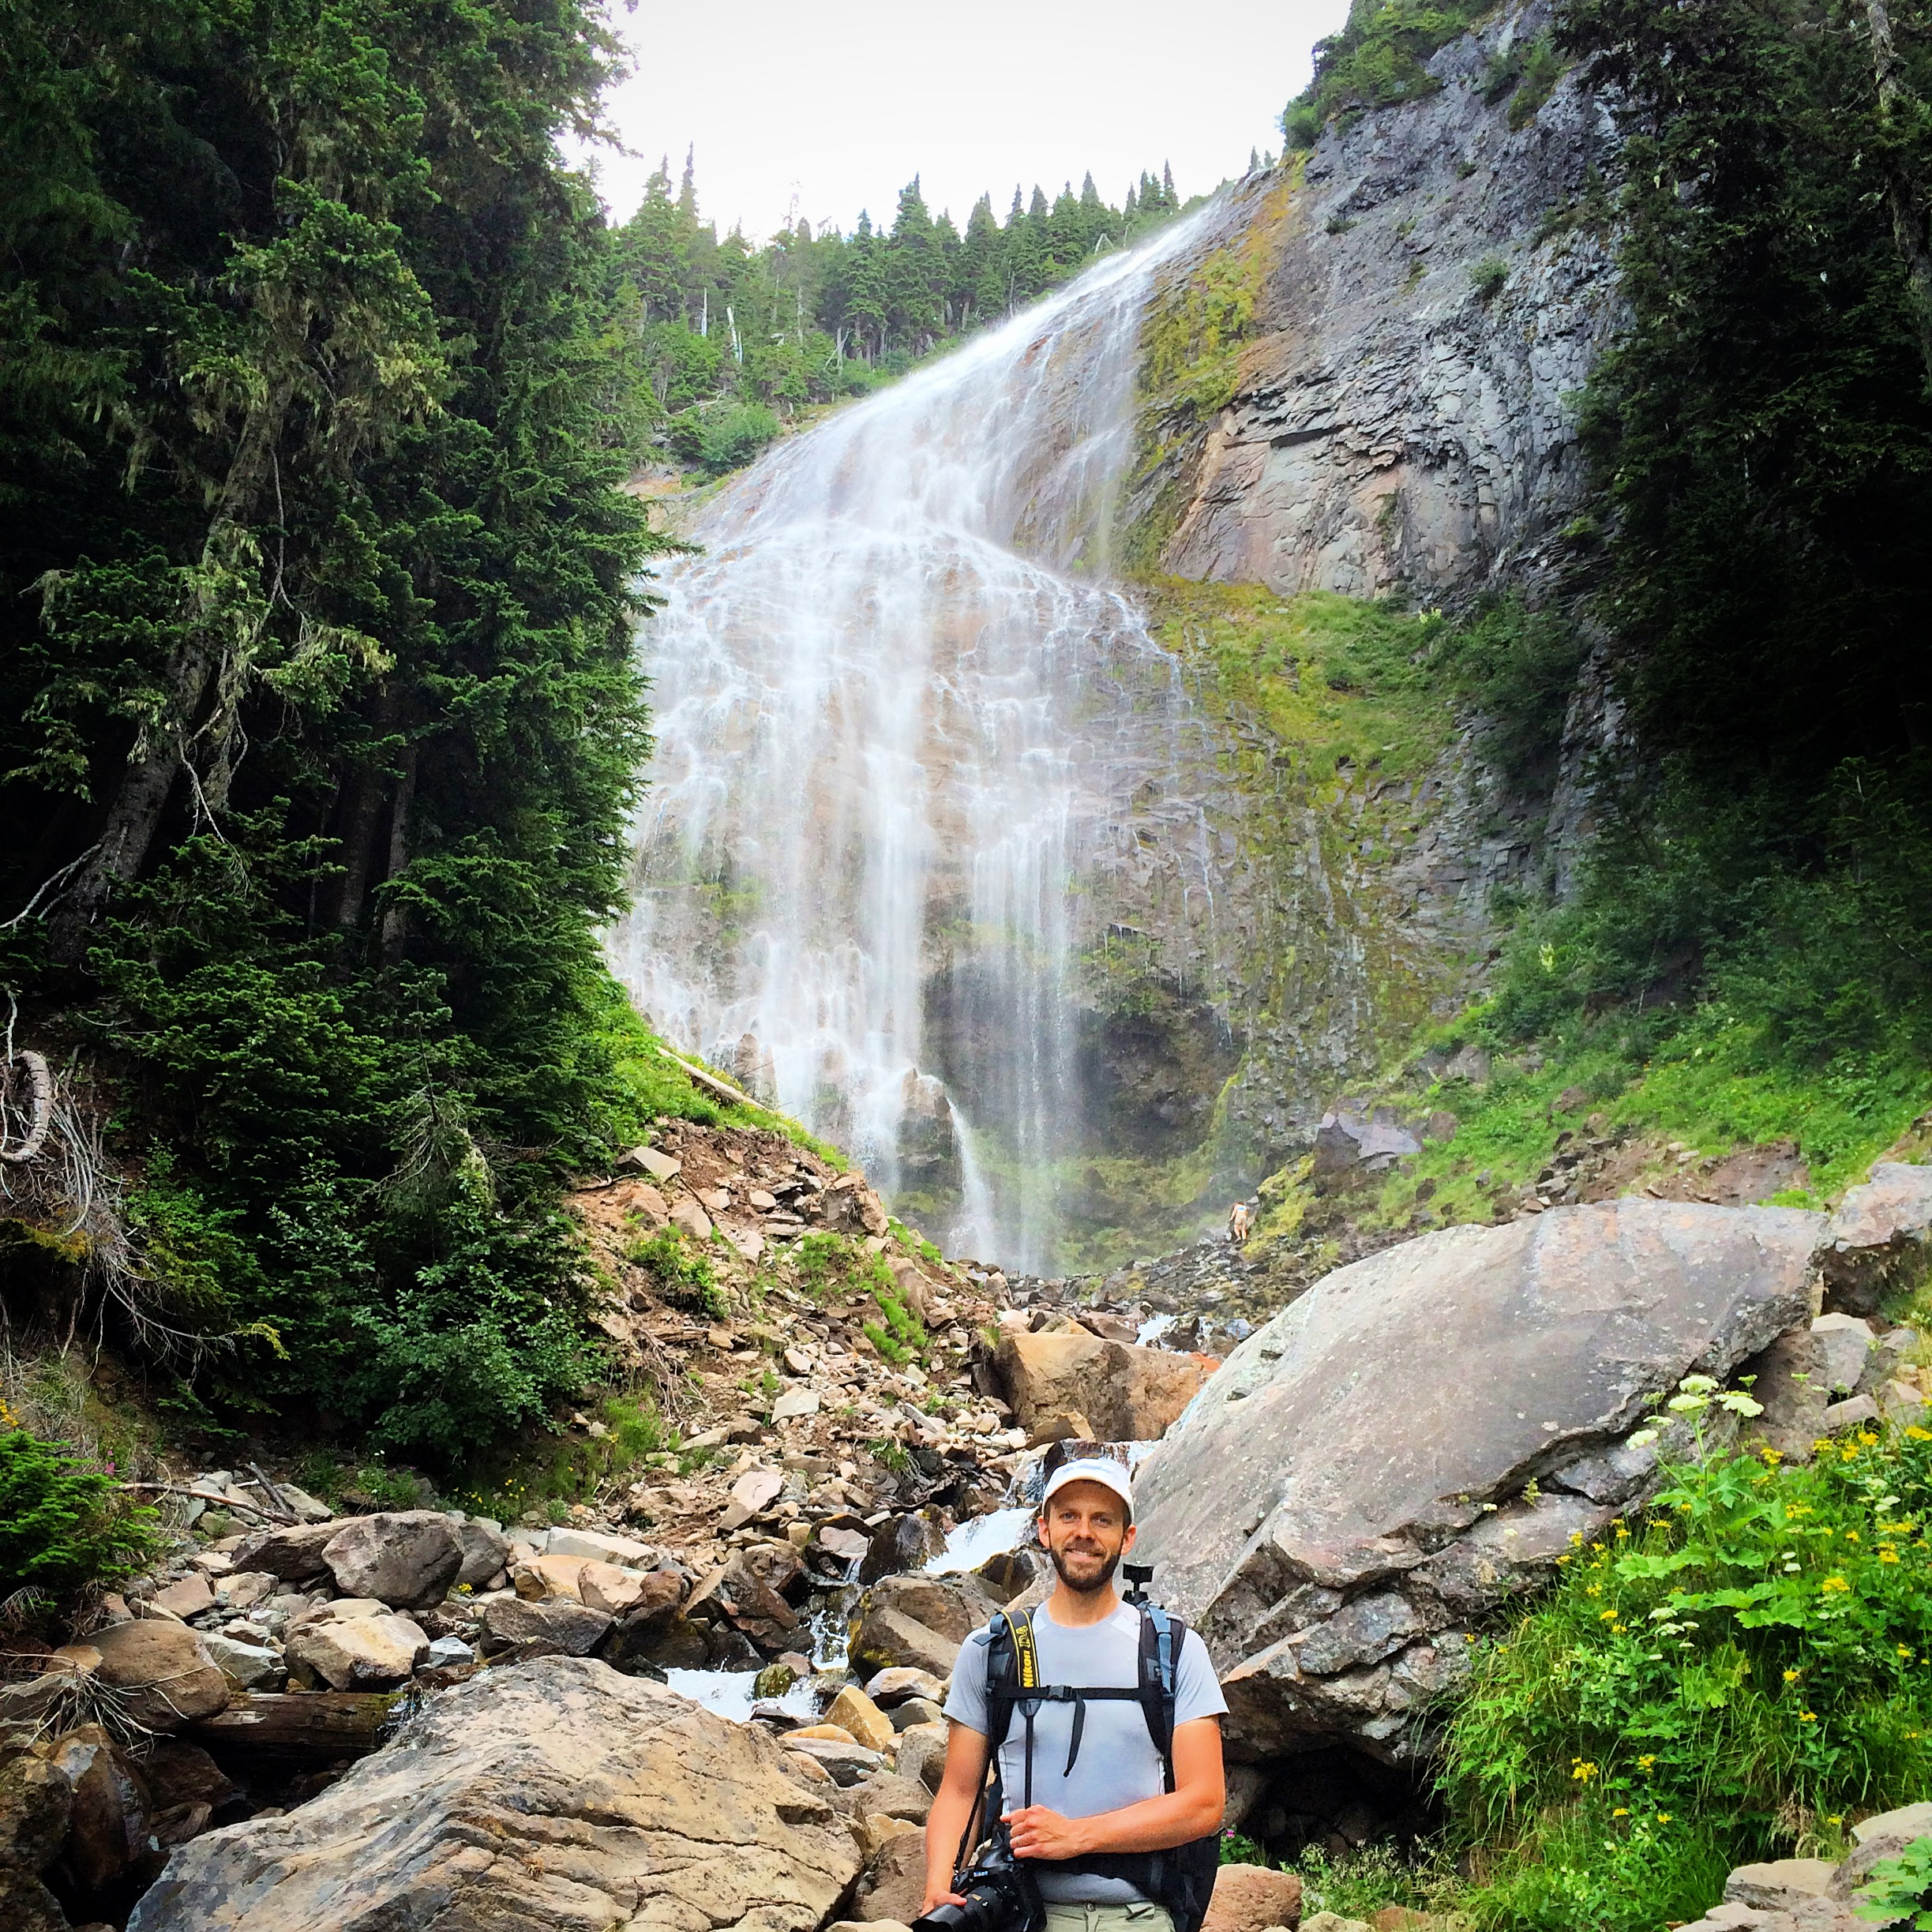 We recently went on a hike this last week and checked out Spray Falls, located in Mt. Rainier's National Park. If you look close enough, you will see two people walking up to the falls, in the background... just to give you an idea of how tall the falls are, which is 354 feet! So beautiful! My husband, that is... the falls are a close second ;)